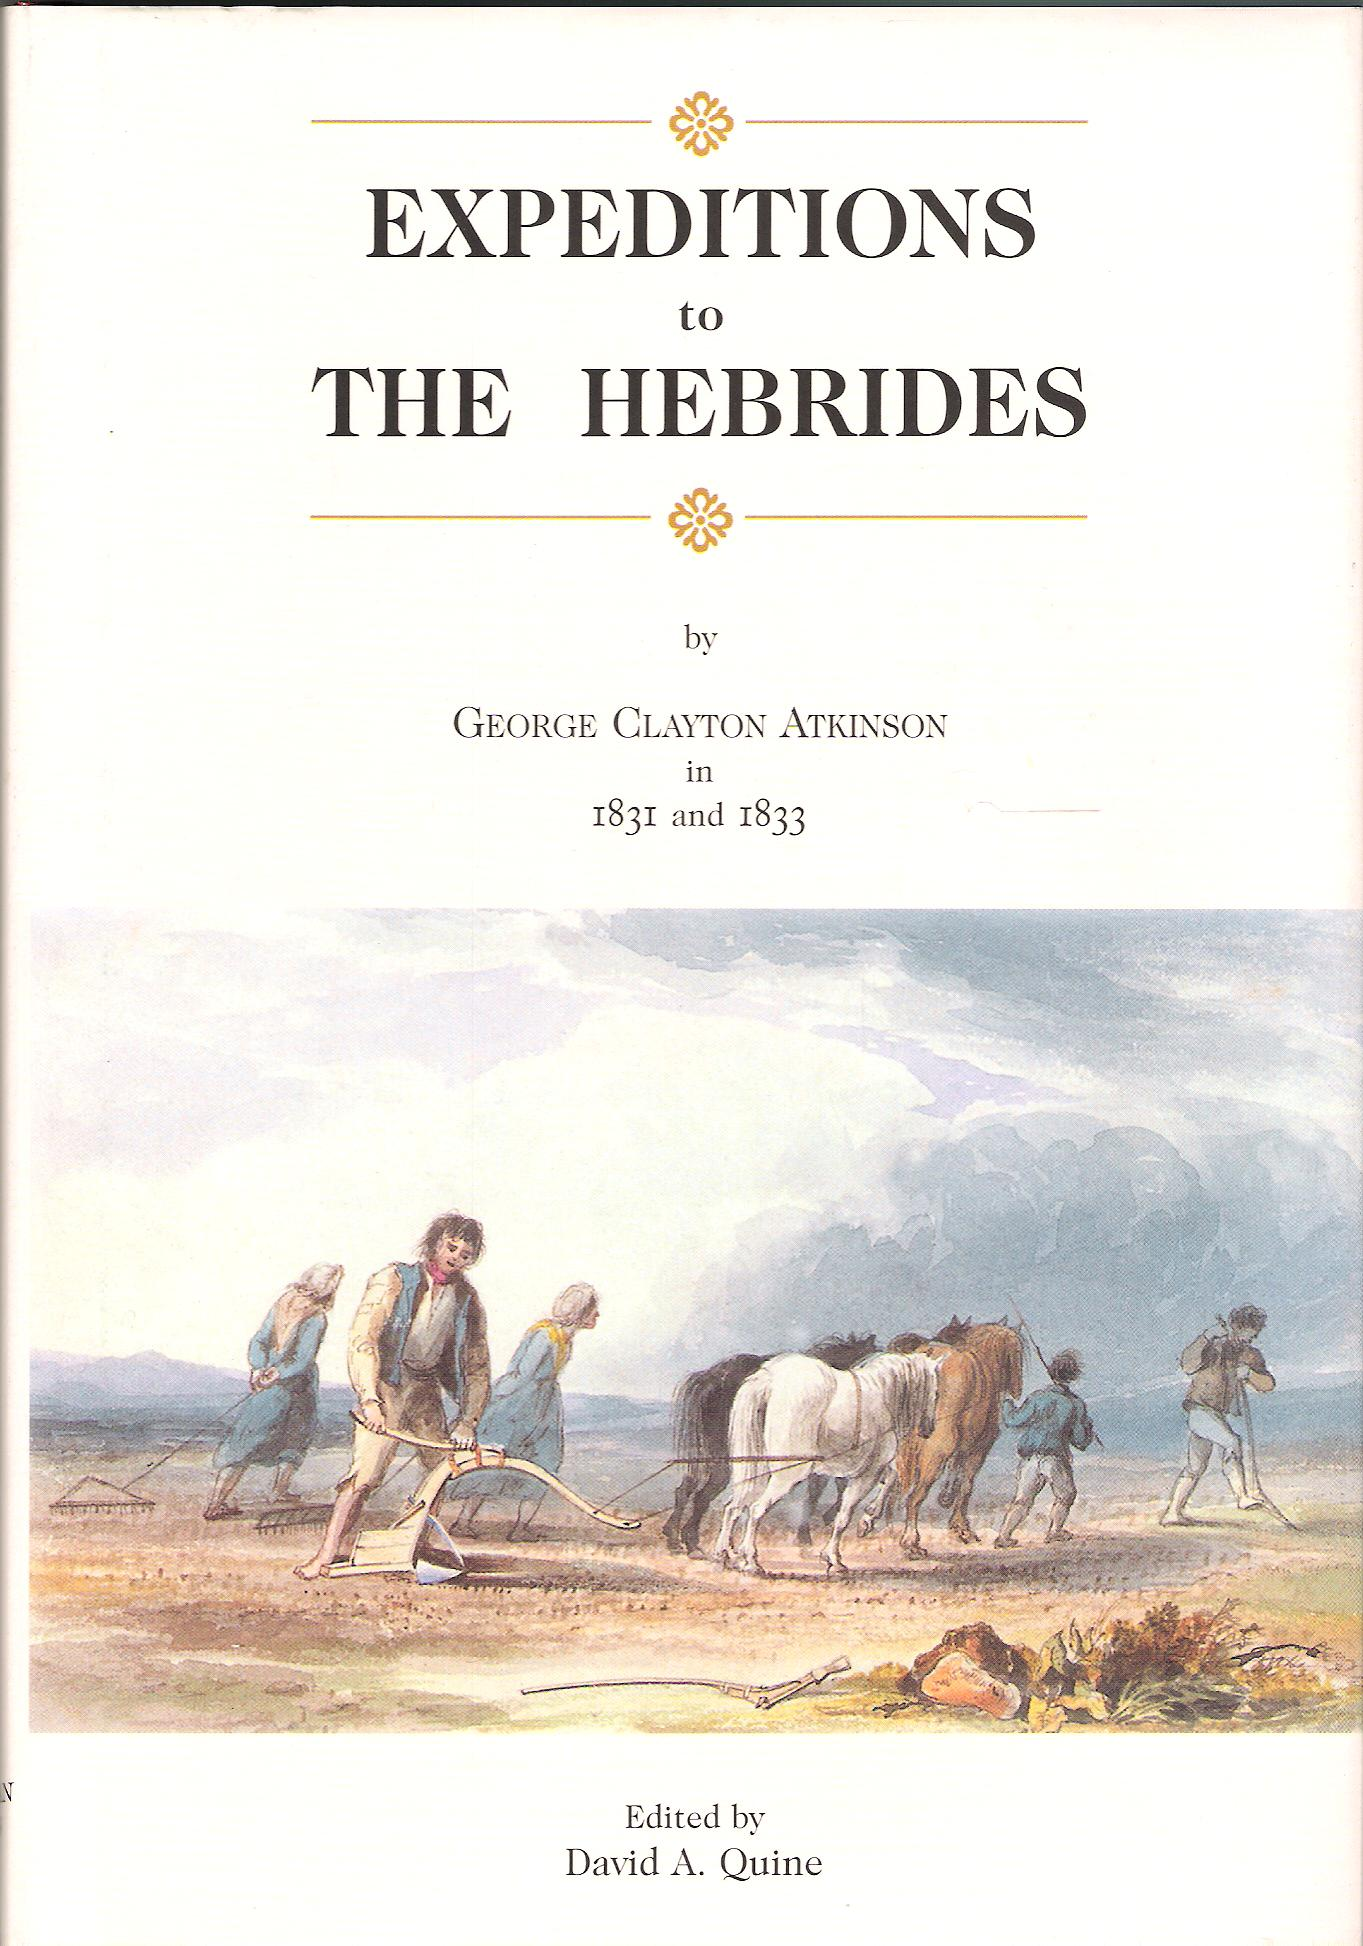 Image for Expeditions to the Hebrides by George Clayton Atkinson in 1831 and 1833.